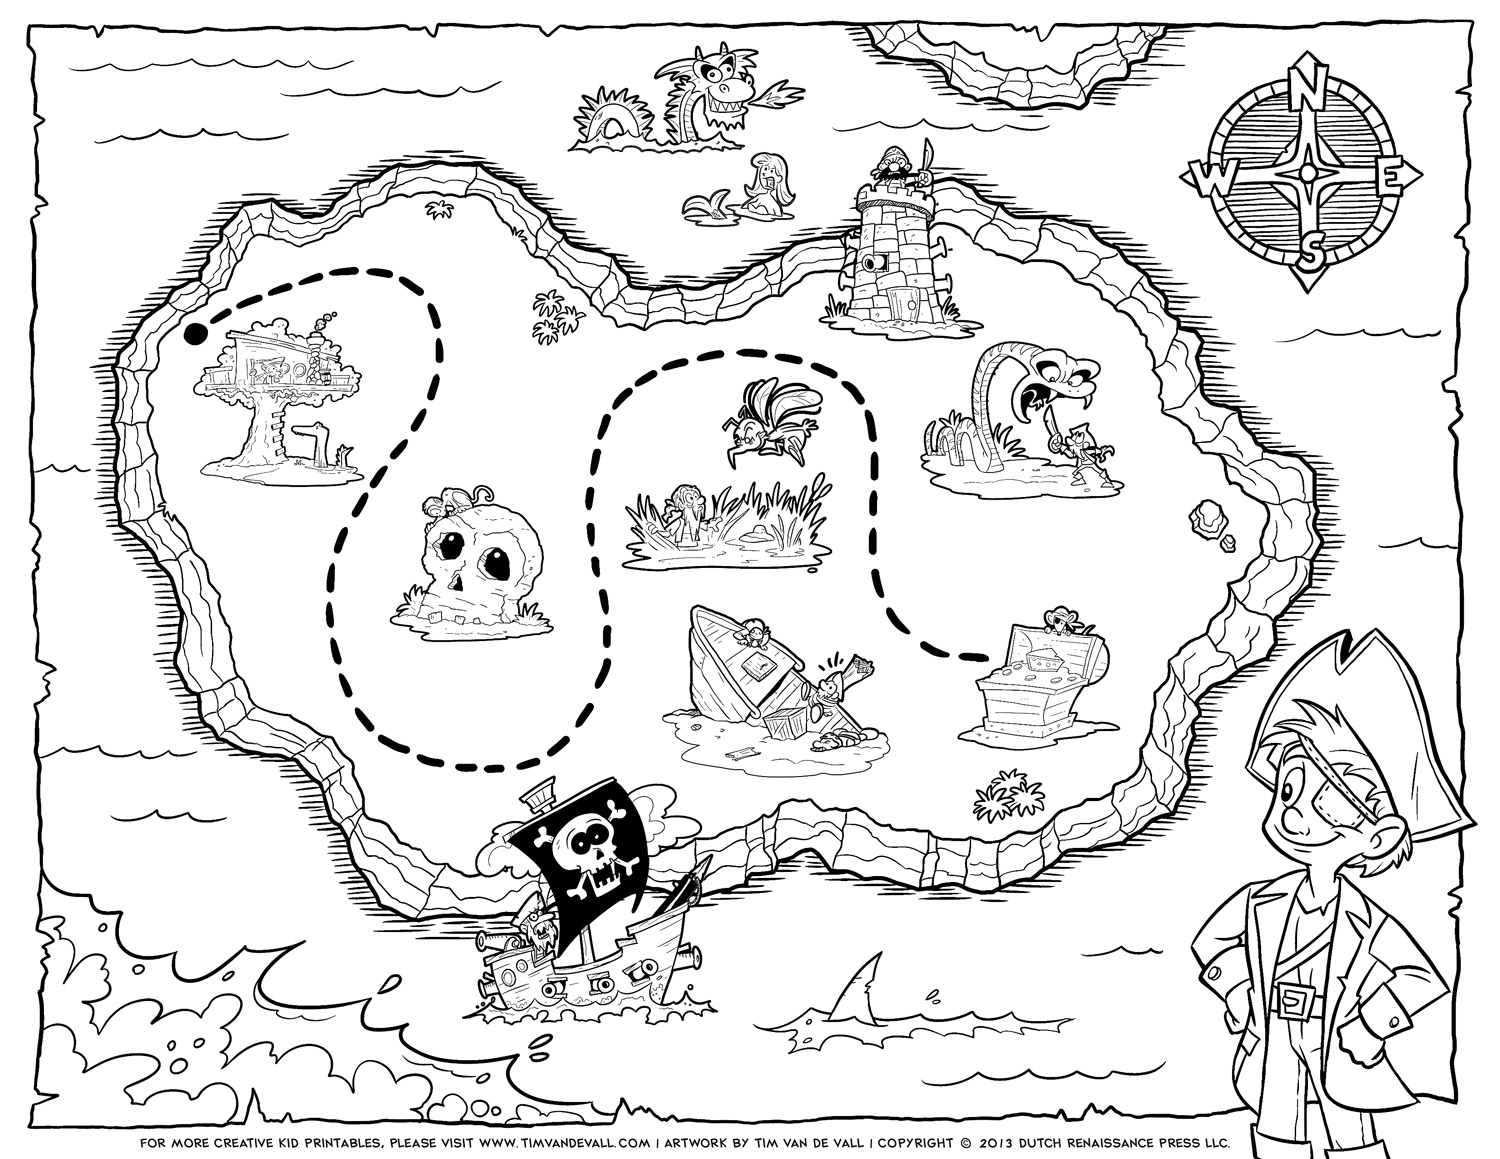 graphic about Printable Treasure Maps titled Totally free Pirate Treasure Maps for a Pirate Birthday Get together